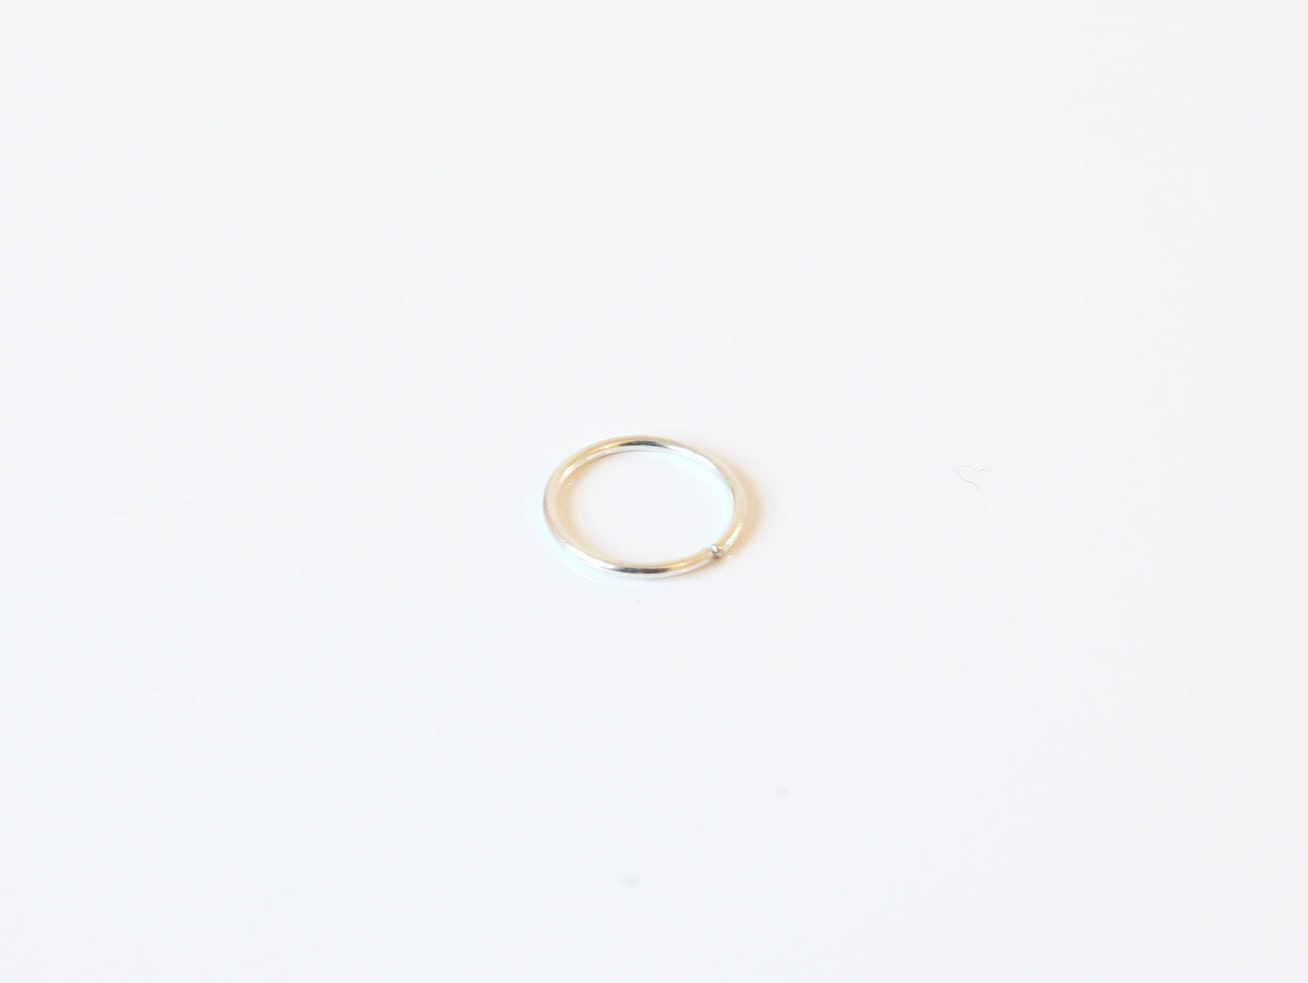 23G 22G Sterling Silver Infinity Ring 512mm Nose